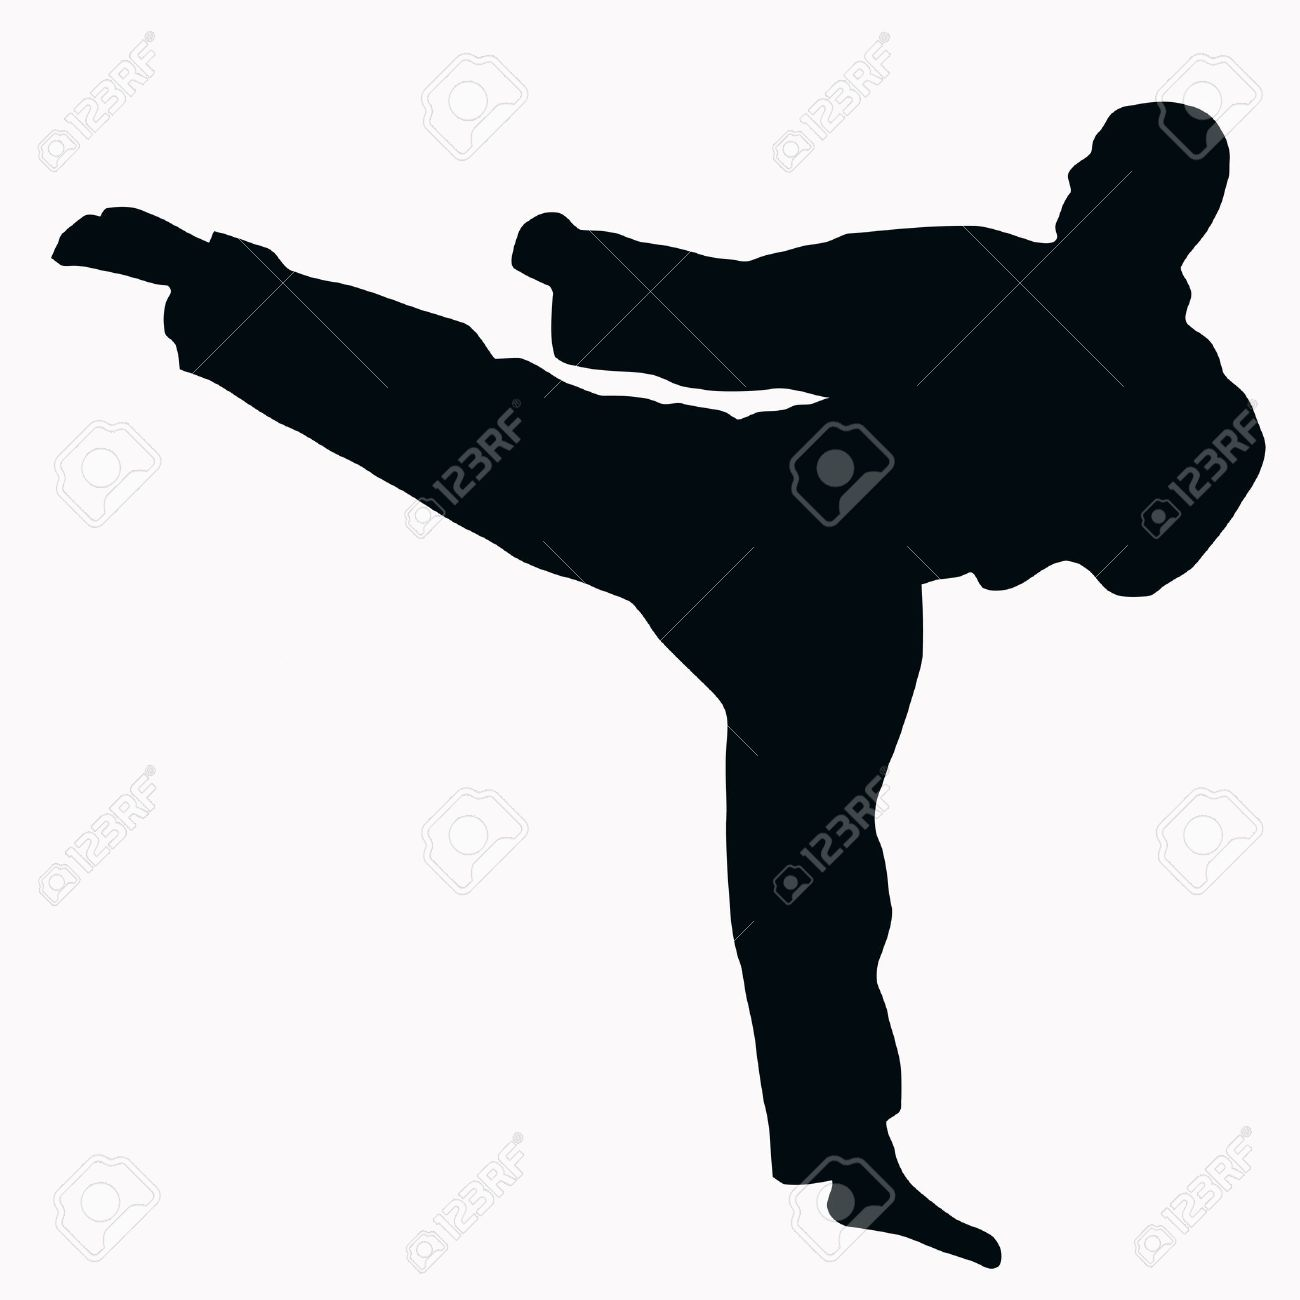 Karate-do Stock Images, Royalty-Free Images &- Vectors | Shutterstock